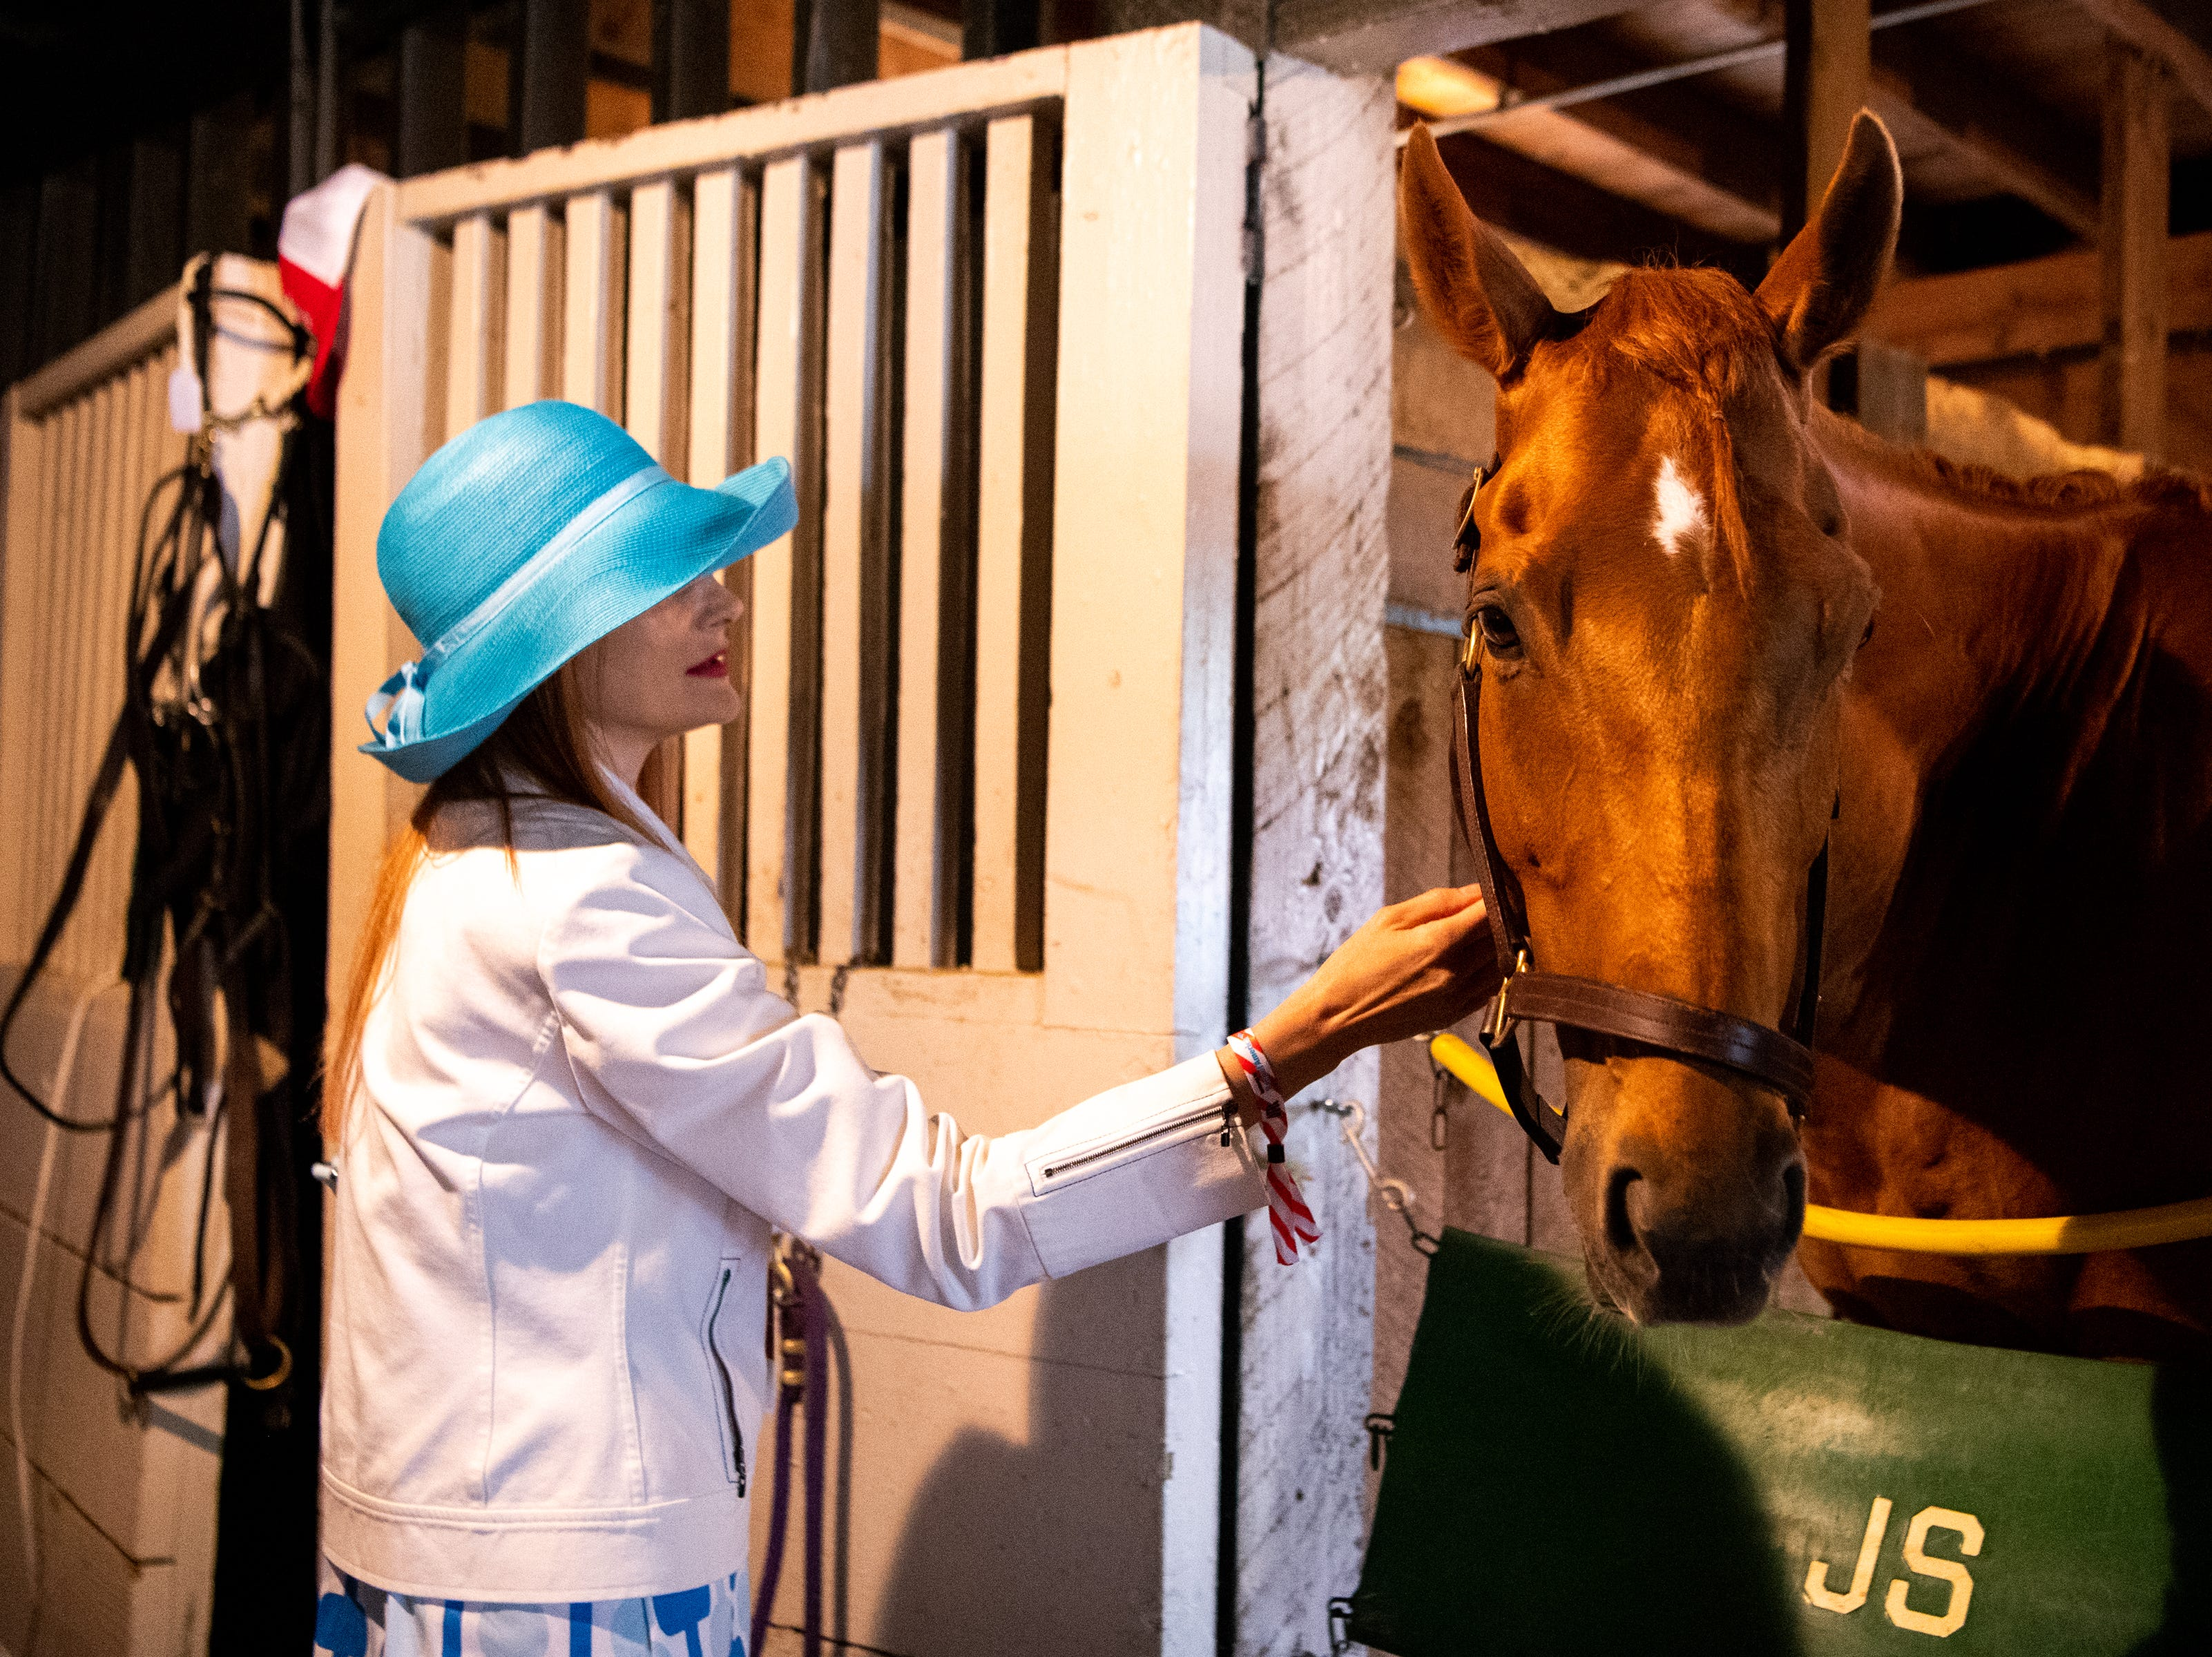 Elizabeth Wild pets a horse in the stables during the Iroquois Steeplechase at Percy Warner Park Saturday, May 11, 2019, in Nashville, Tenn.